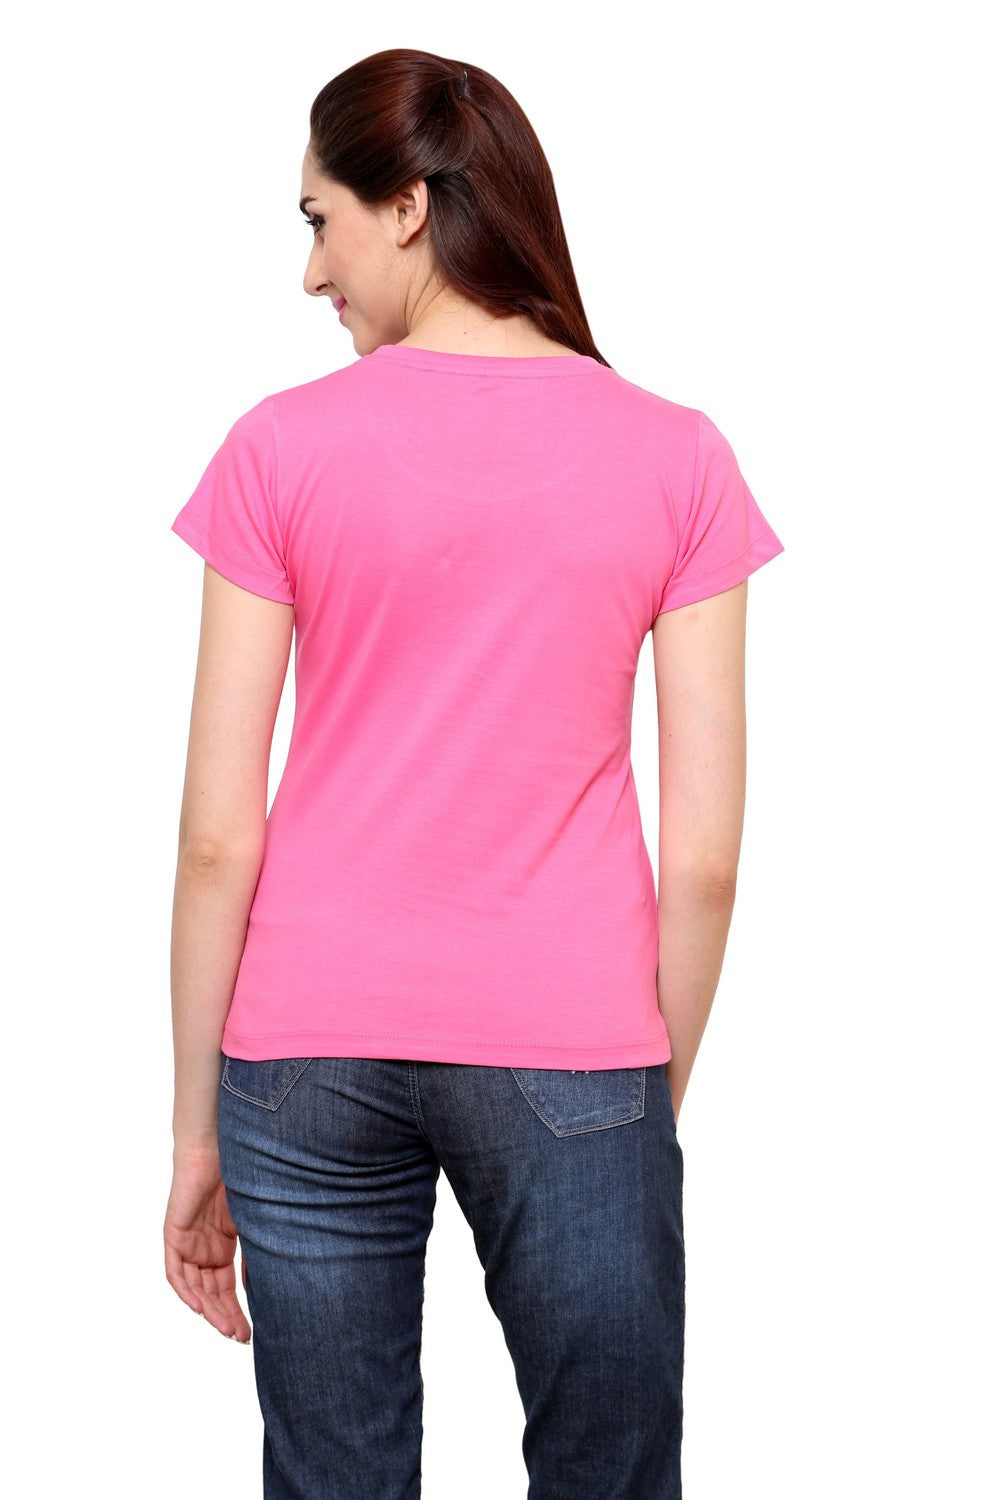 Hand-painted Breezy Leaves Pink T-shirt - RANGRAGE